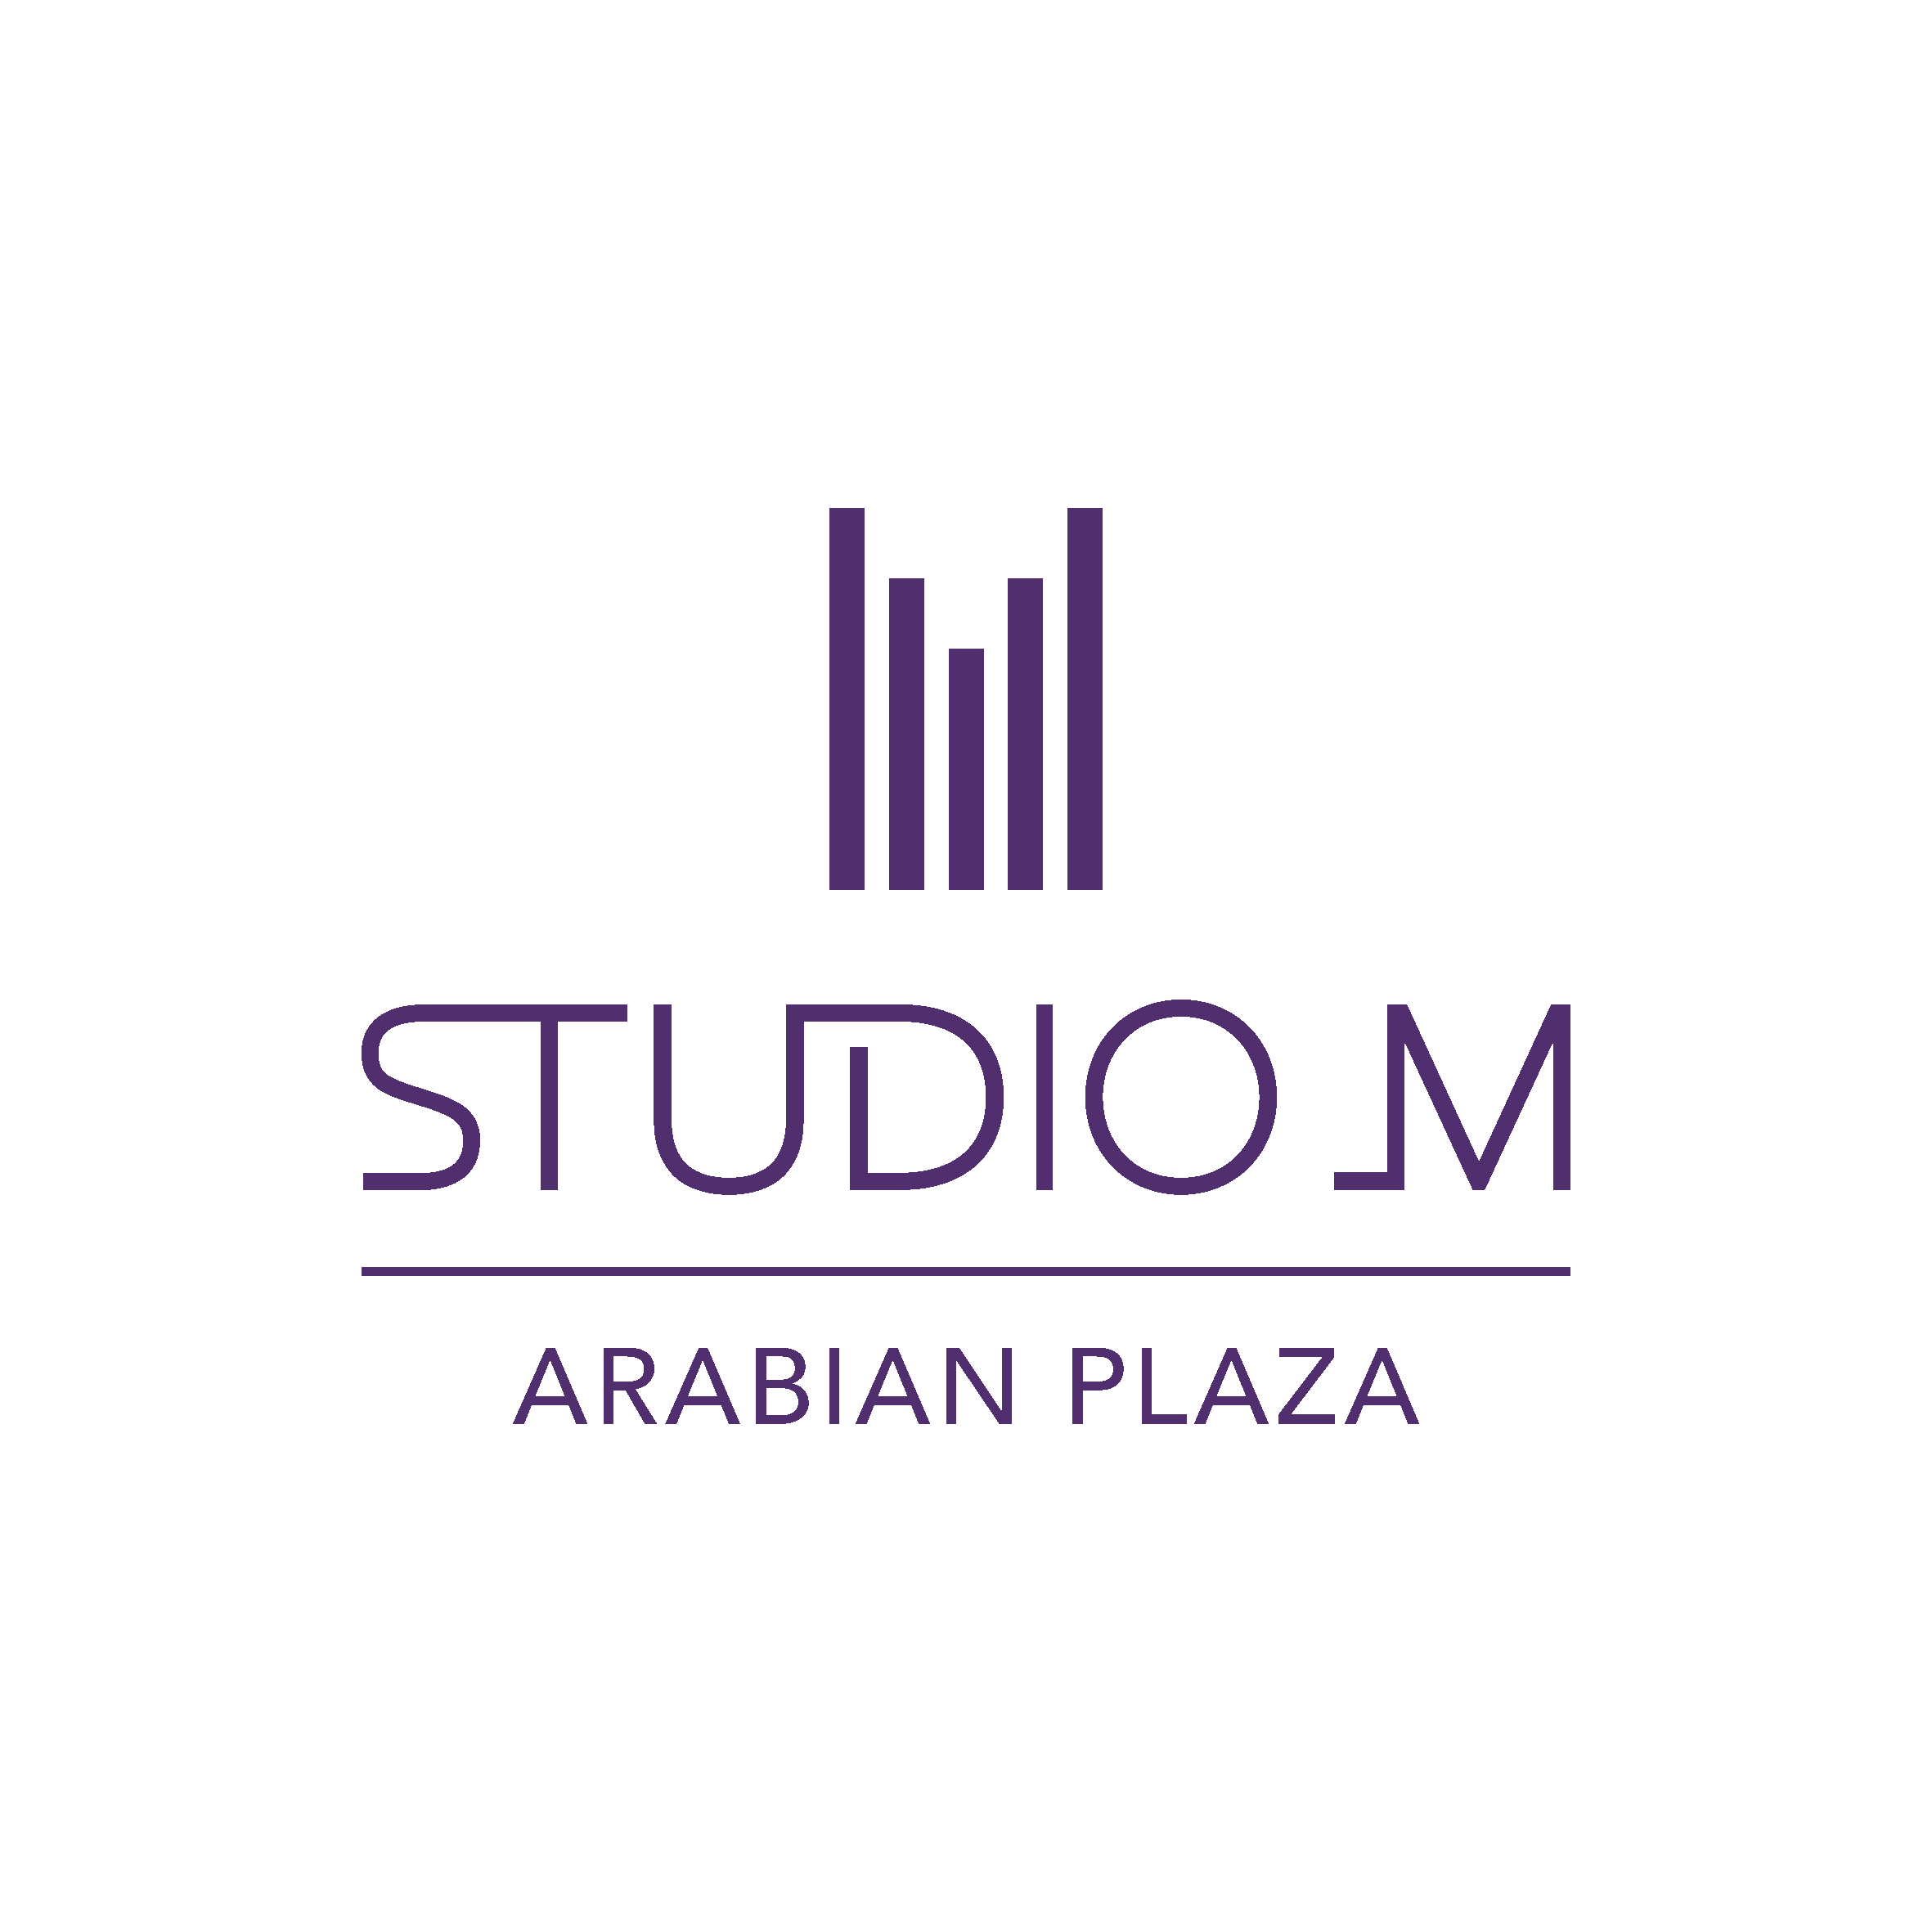 Studio M Arabian Plaza Logo English